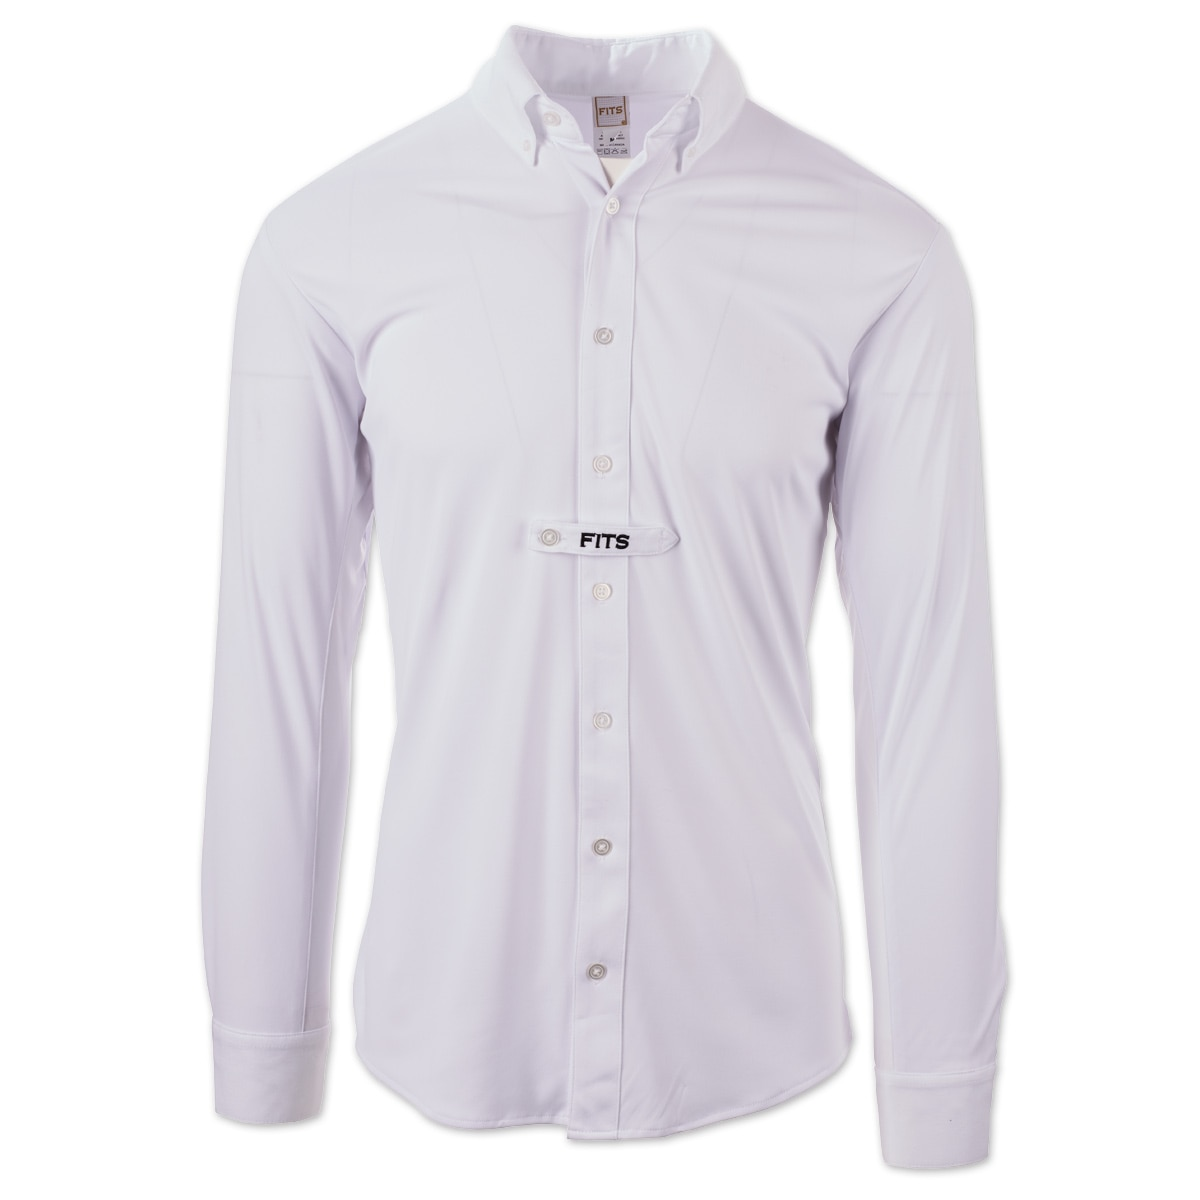 FITS Men's Competition Shirt